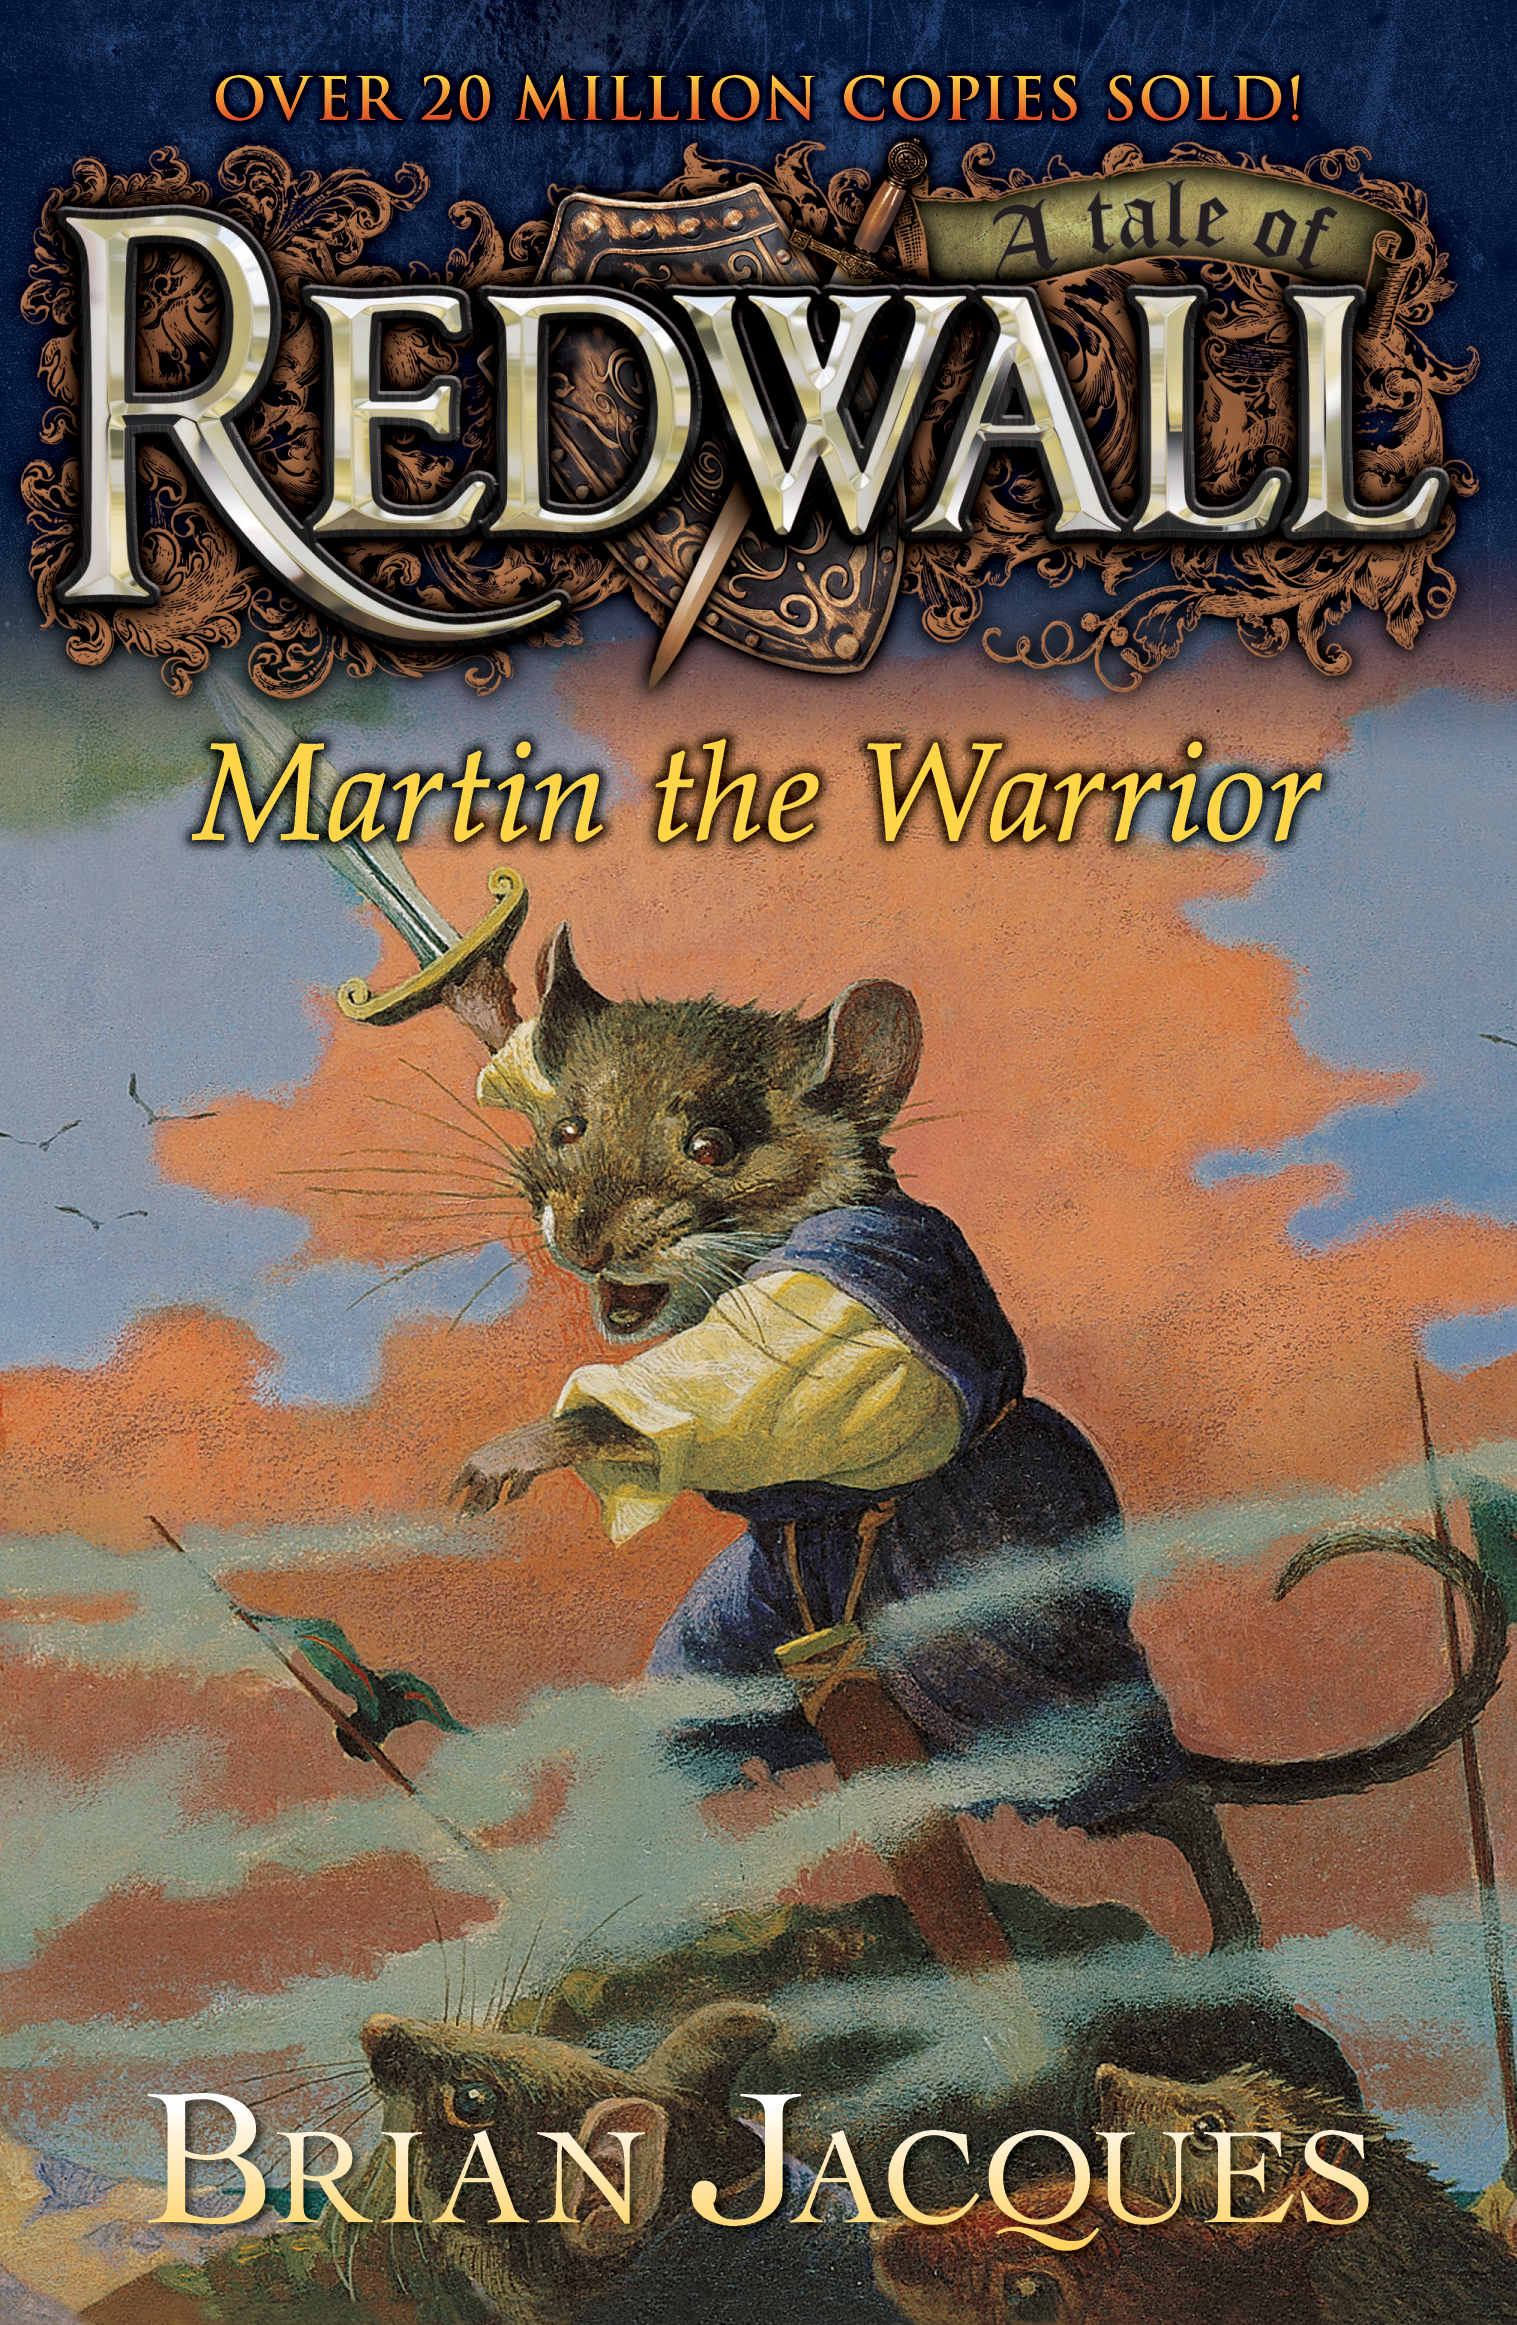 Martin the Warrior, Brian Jacques, Redwall series, authorblog, blog series, book award, fantasy award, Silmarillion Awards, best fantasy weapon, 2016, summer reads, reading, mustread, epic read, books, book love, book nerd, blogger, adventure series, YA, fantasy series, animals series, animal books, E E Rawls, Rawls E Fantasy,